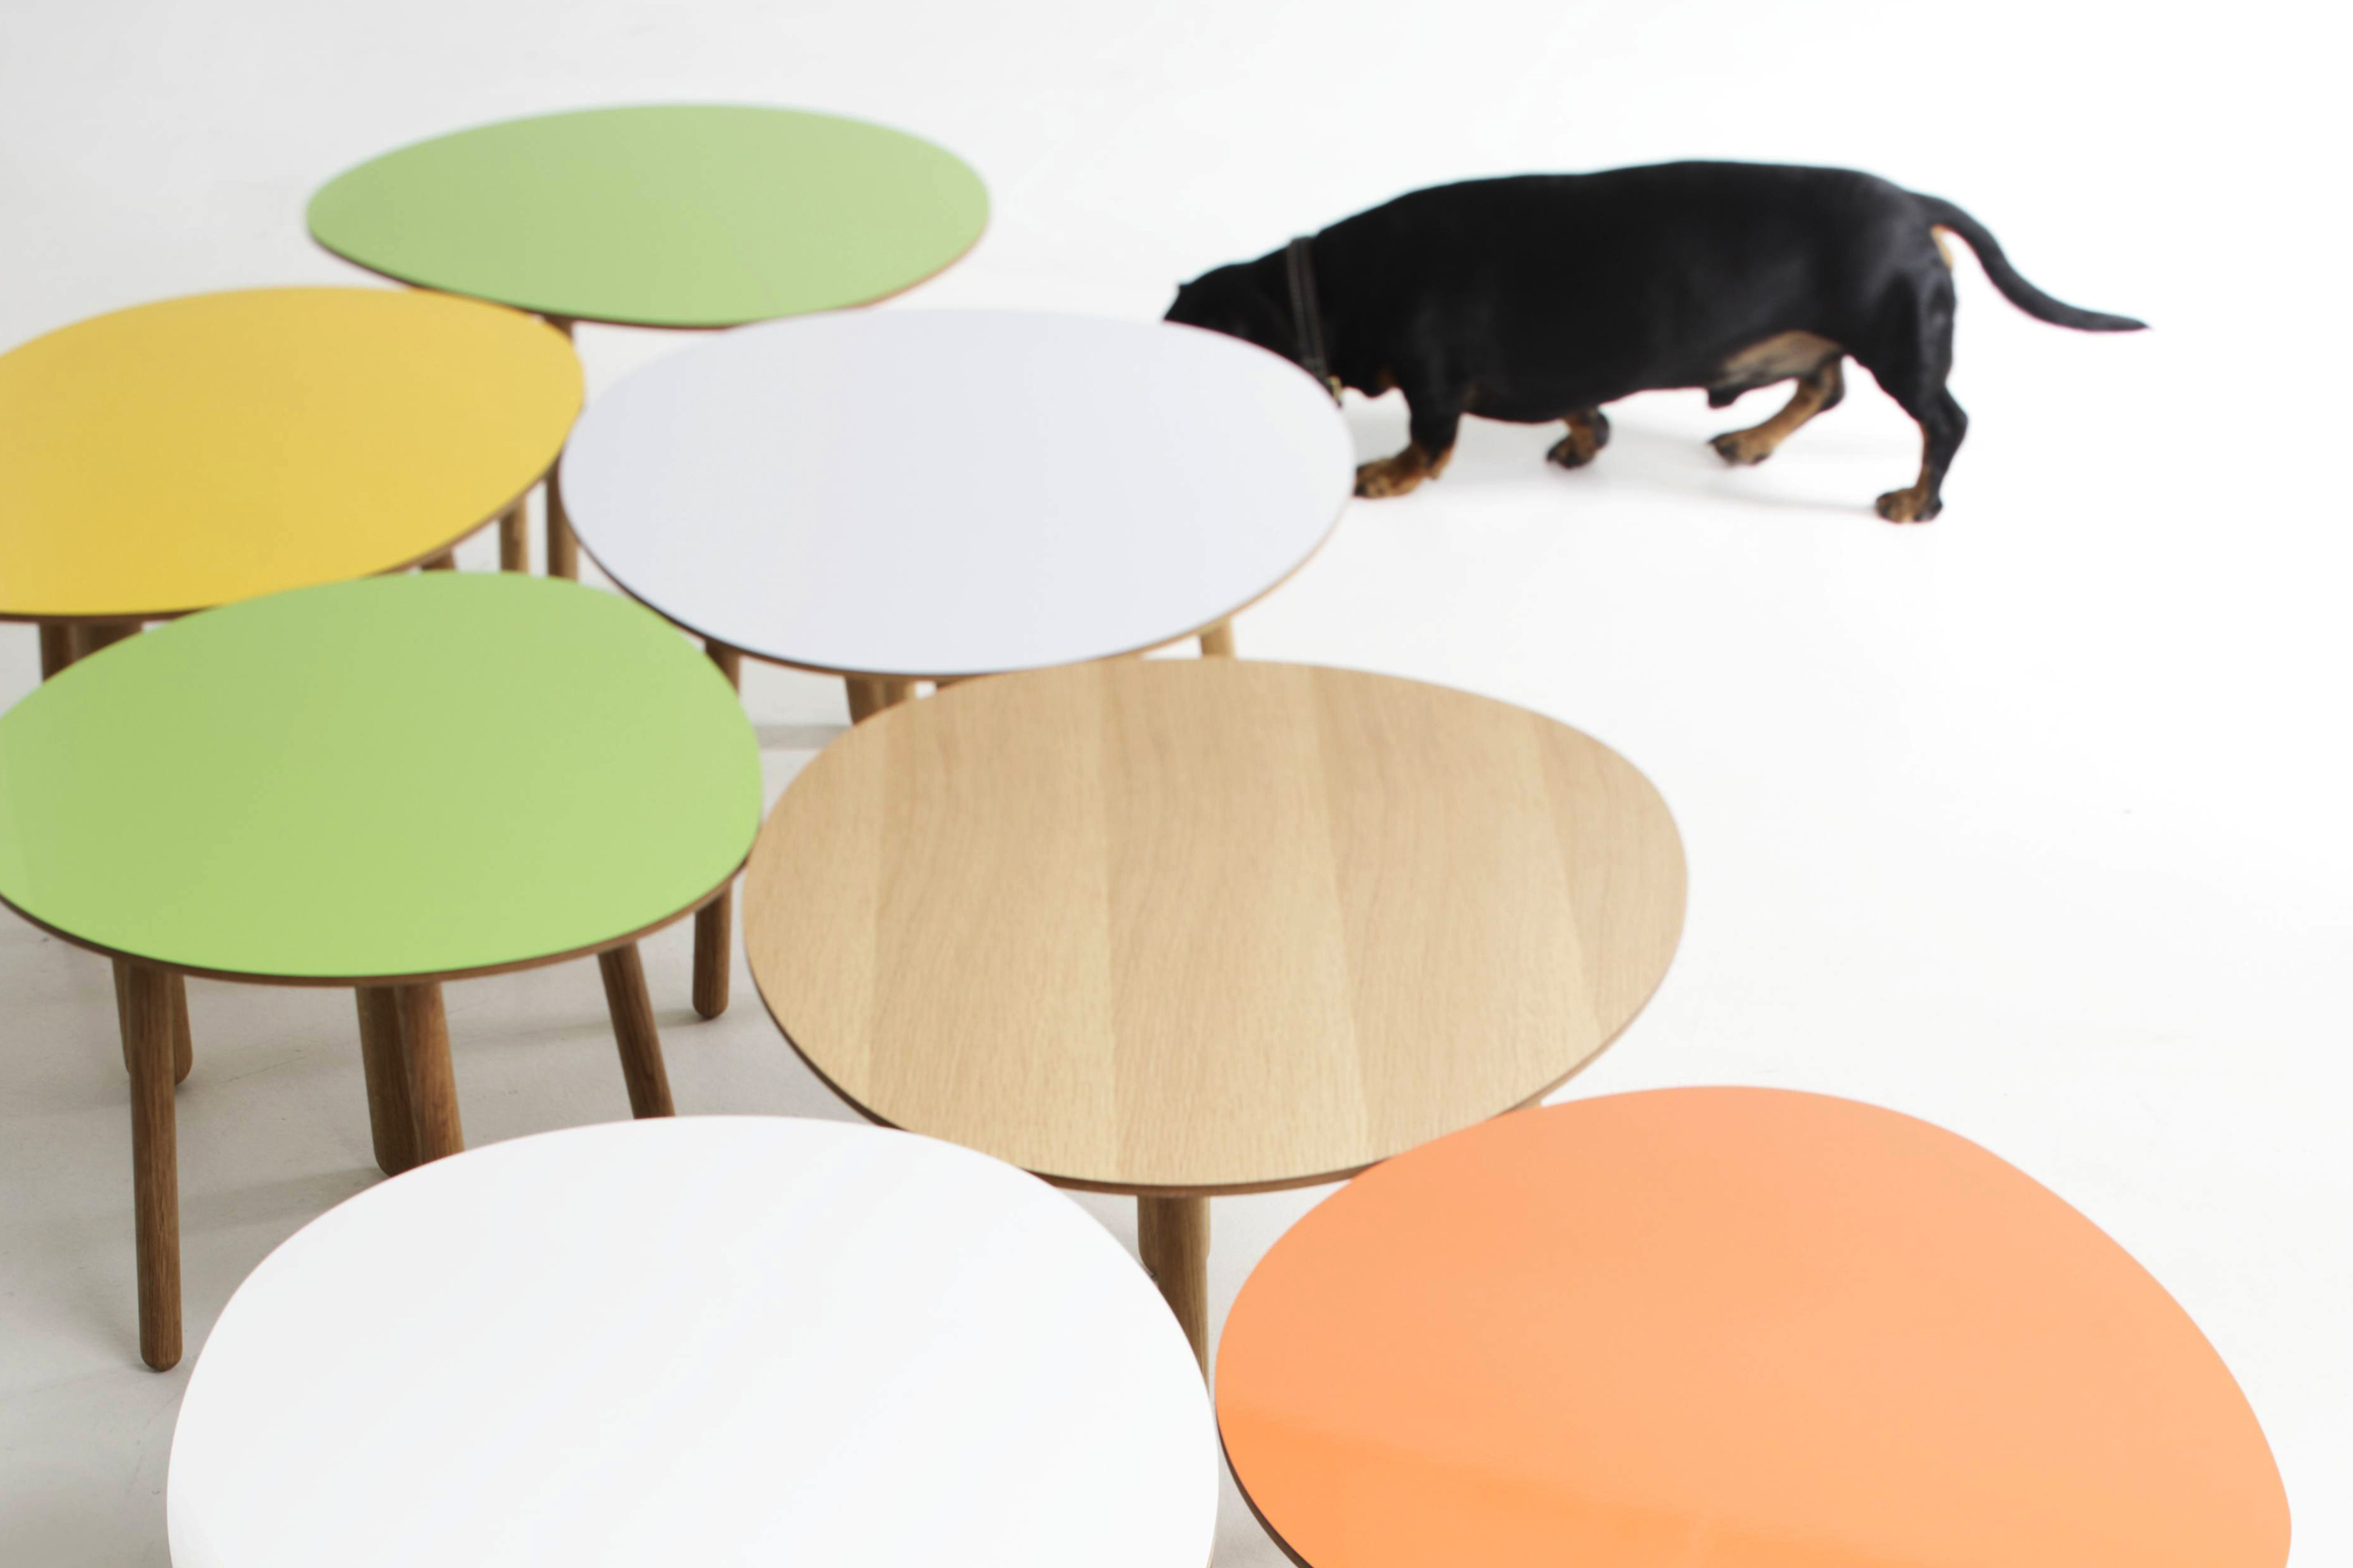 Morris coffee tables in apple green, yellow, white, oak and orange